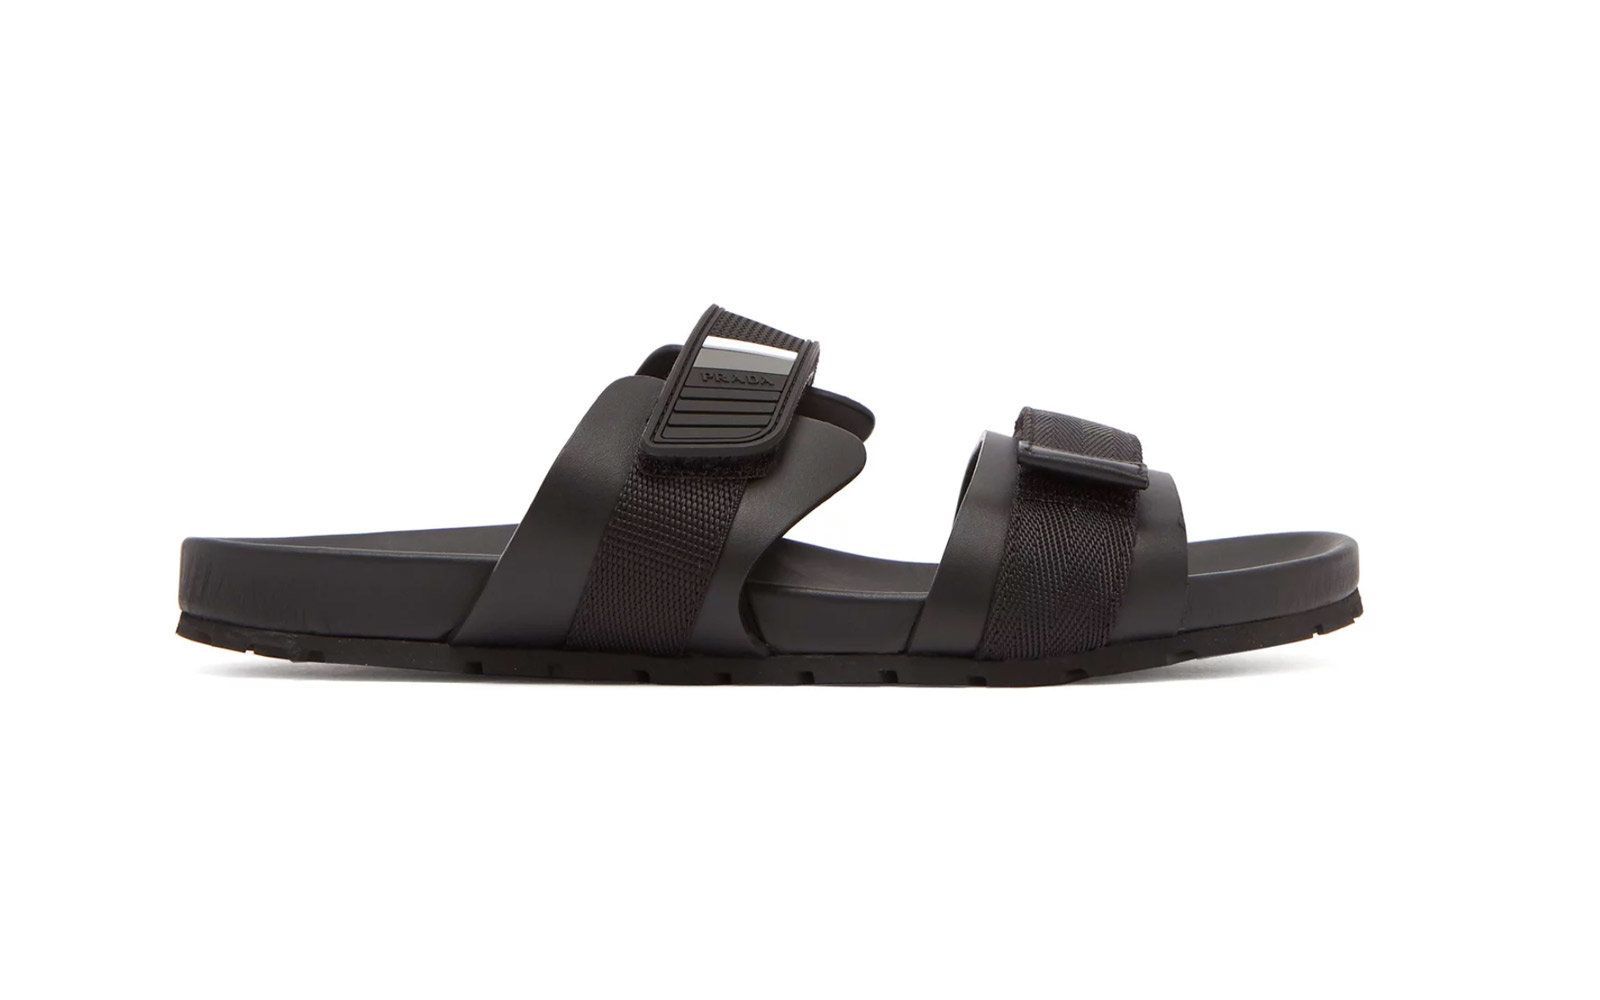 602a42fb6b3 The Best Men s Sandals to Pack for Your Next Vacation